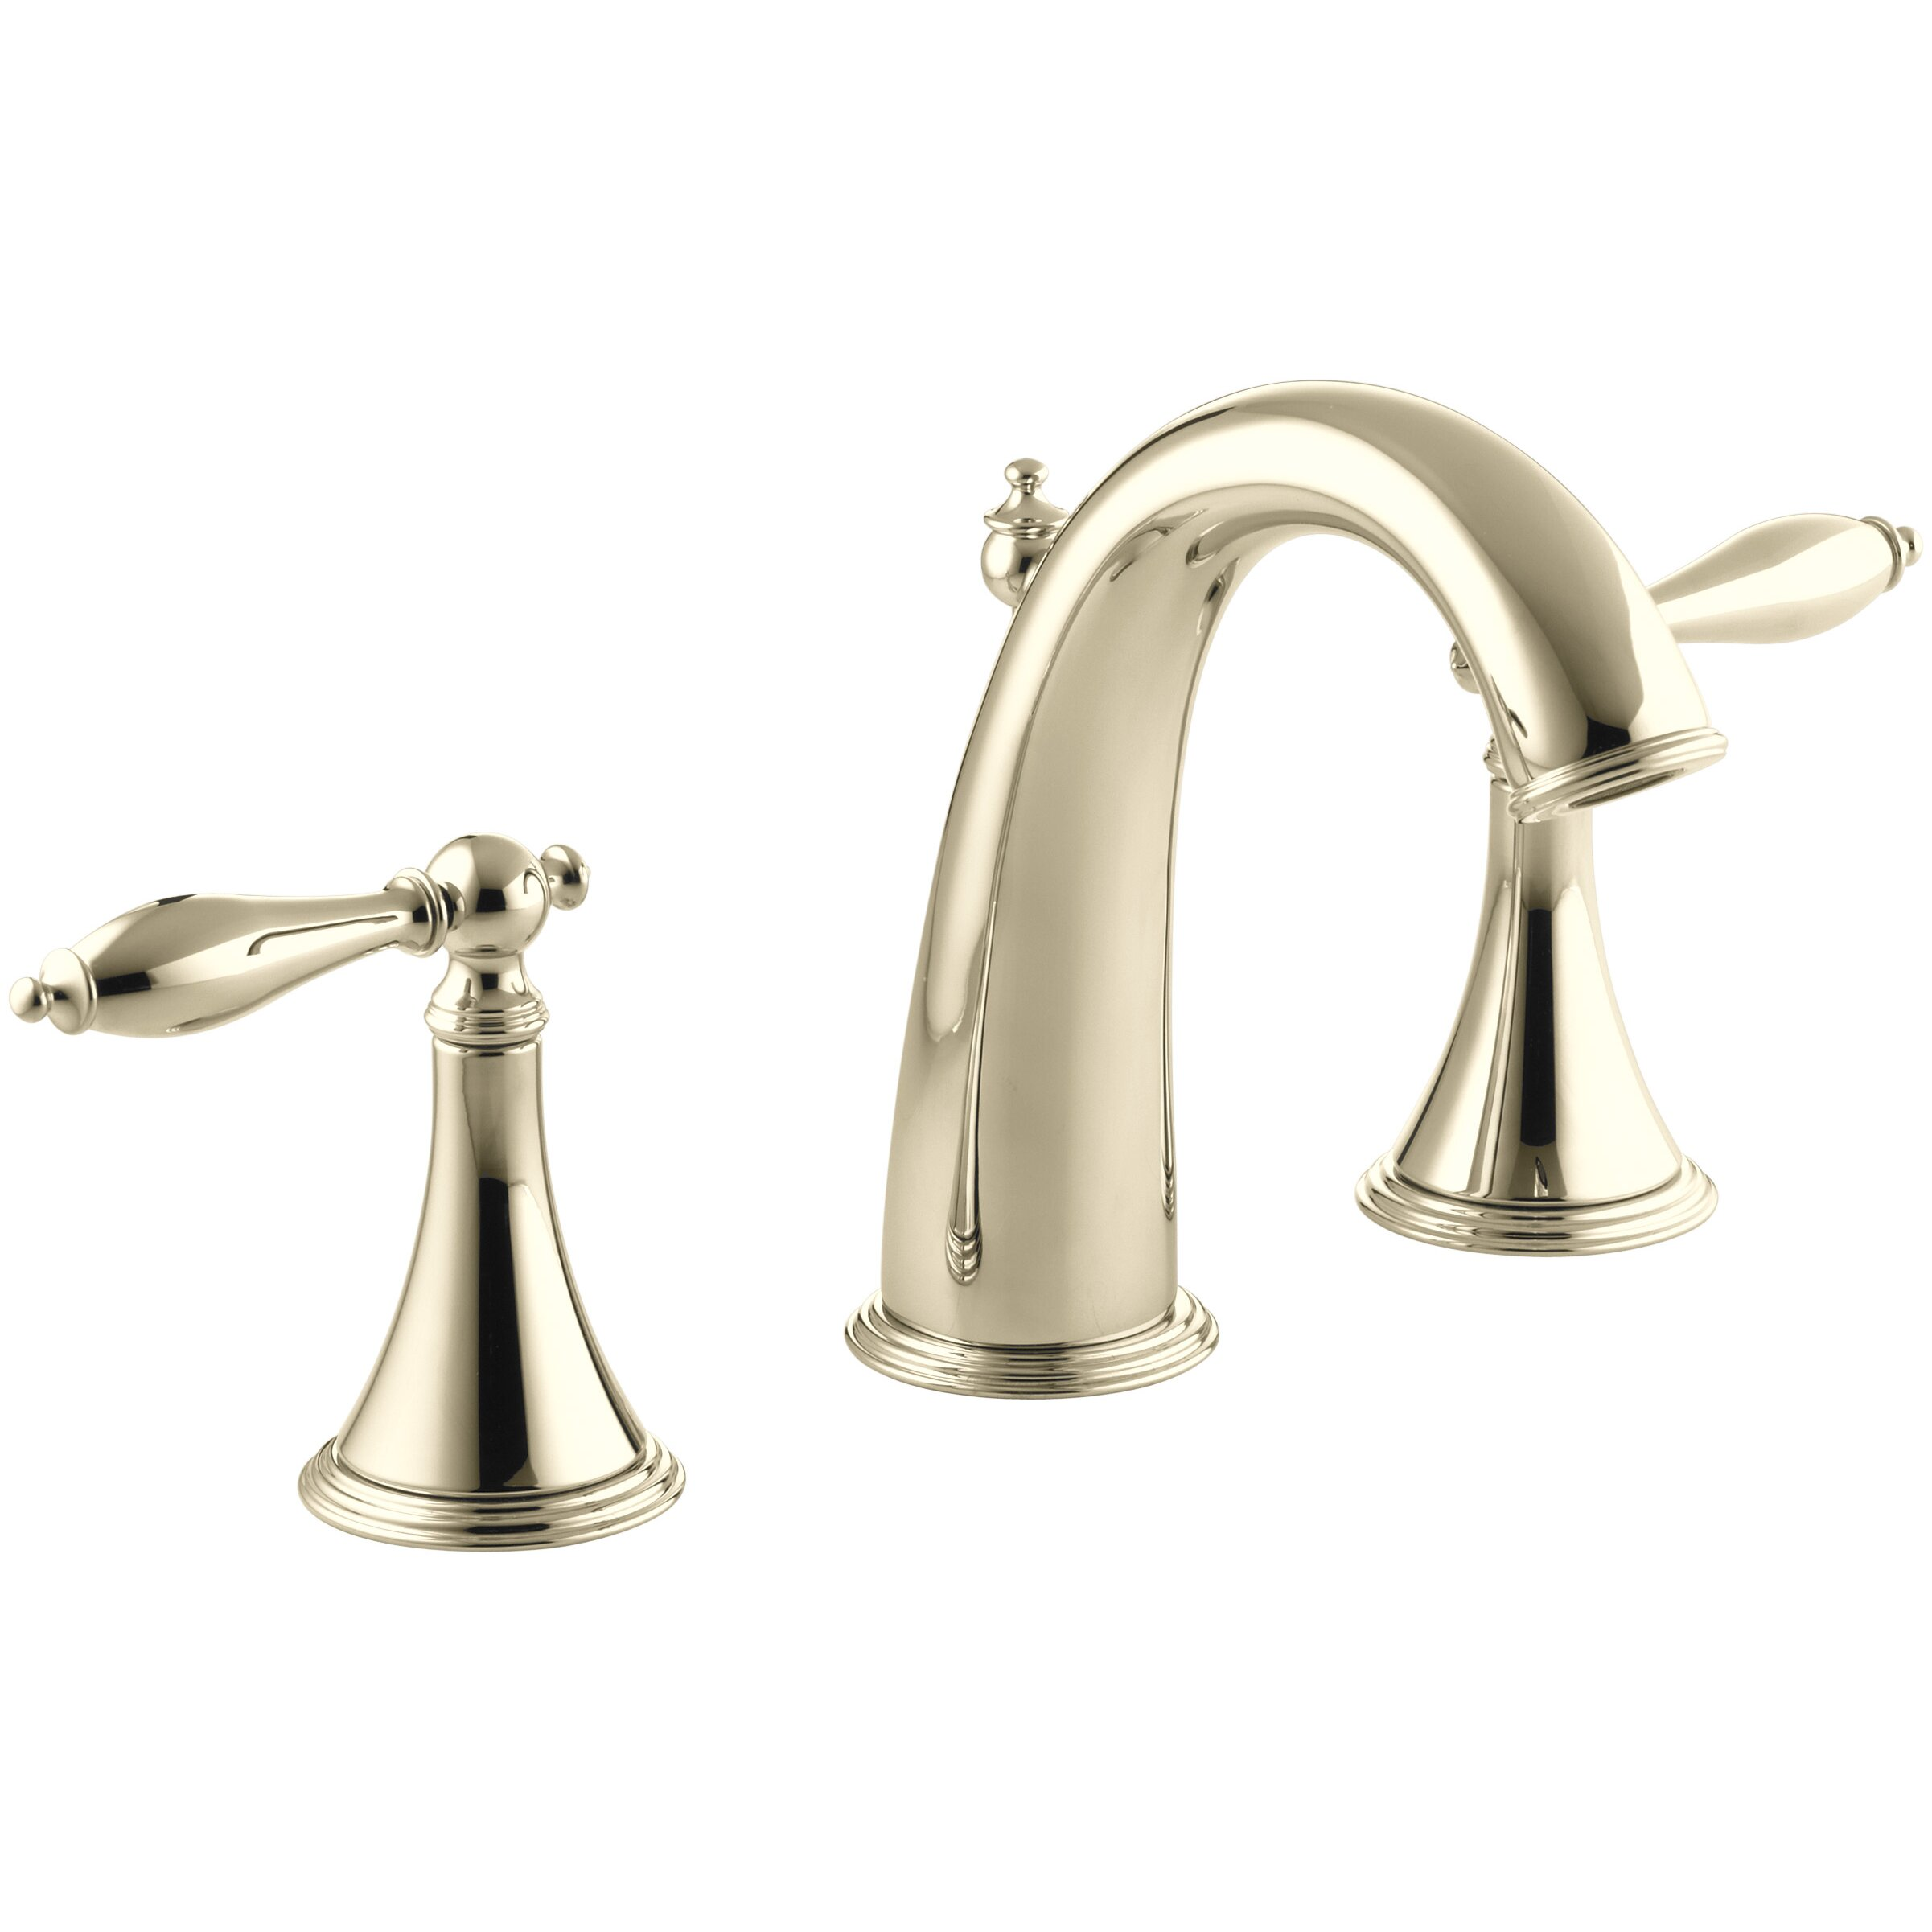 Kohler Faucet Reviews : Kohler Finial Traditional Widespread Bathroom Sink Faucet with Lever ...